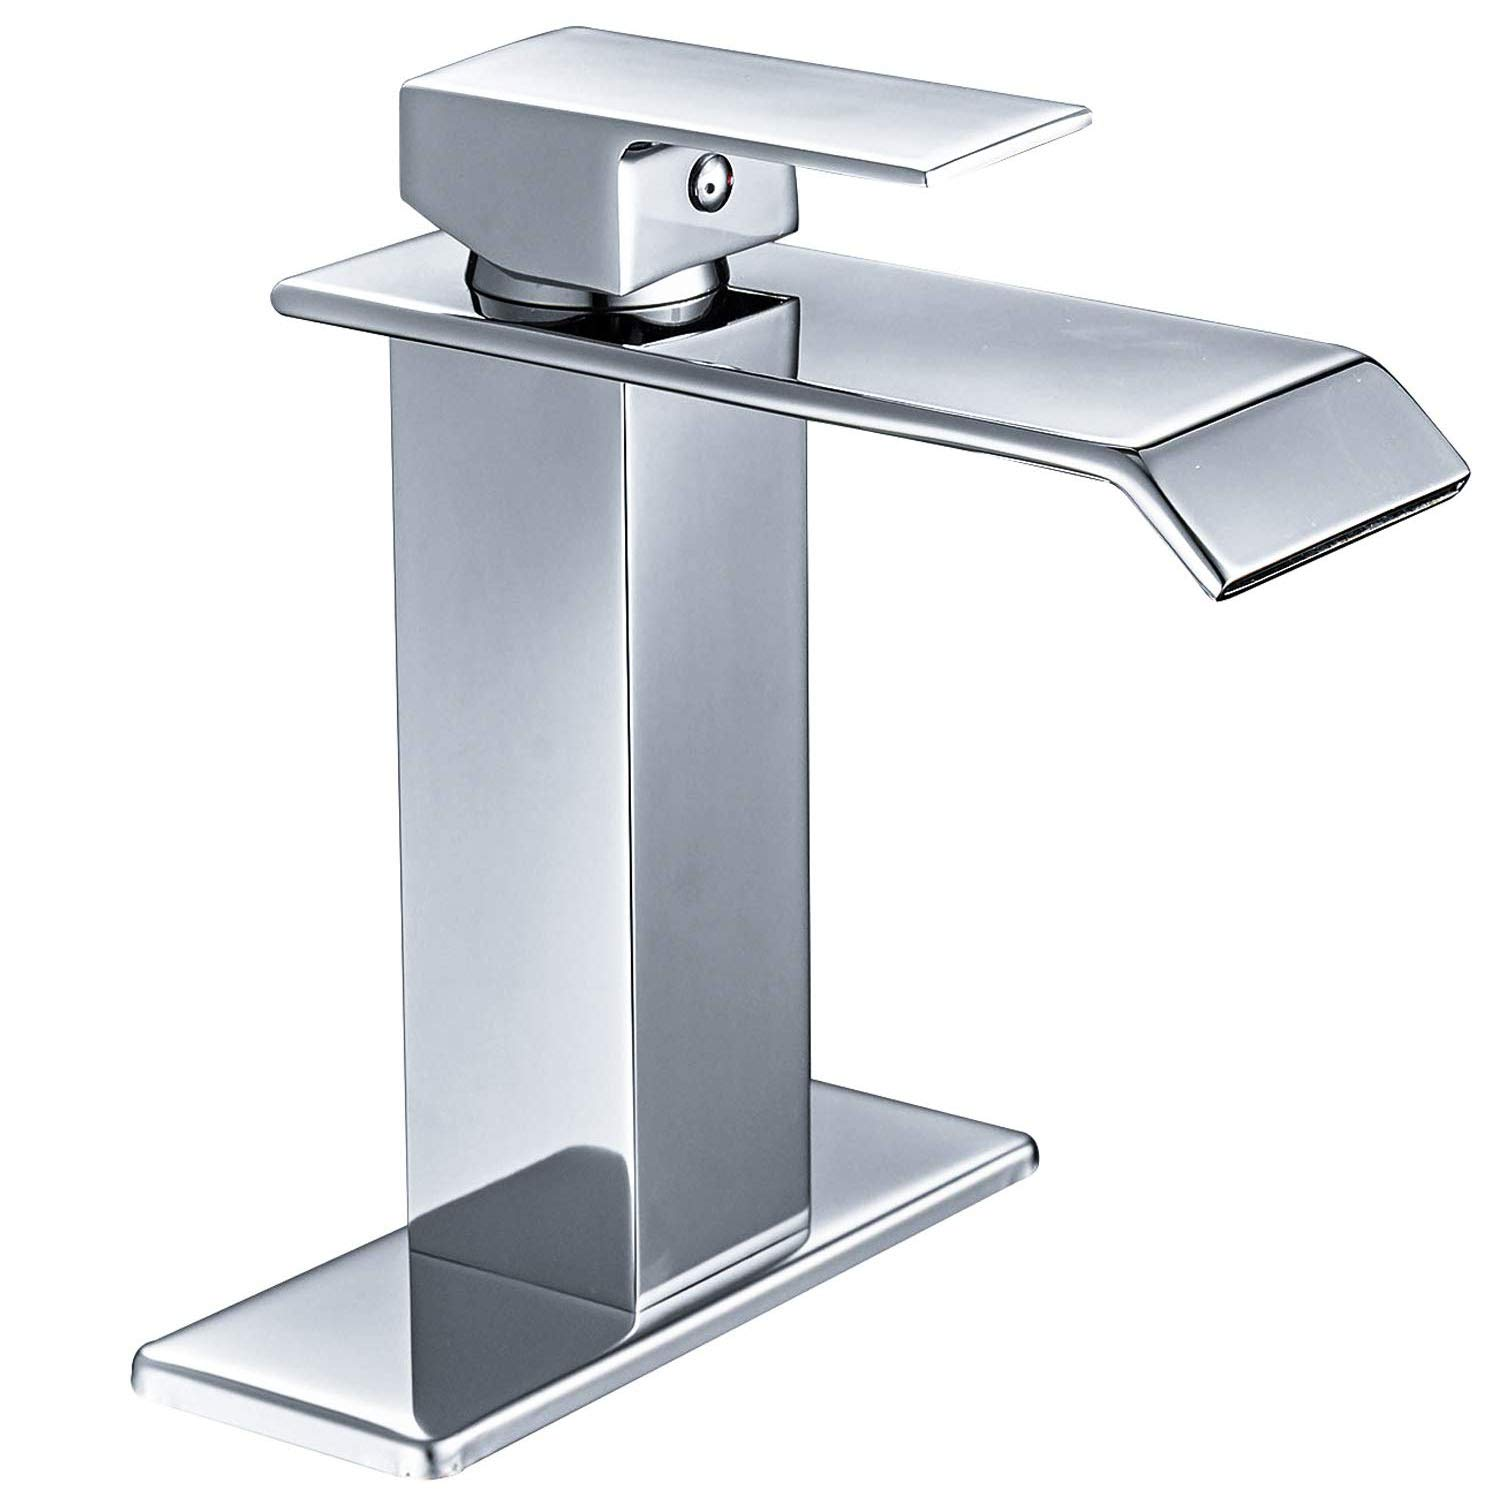 homevacious bathroom faucet waterfall chrome single handle modern lavatory sink vanity faucets one hole lever extra large rectangular spout basin deck